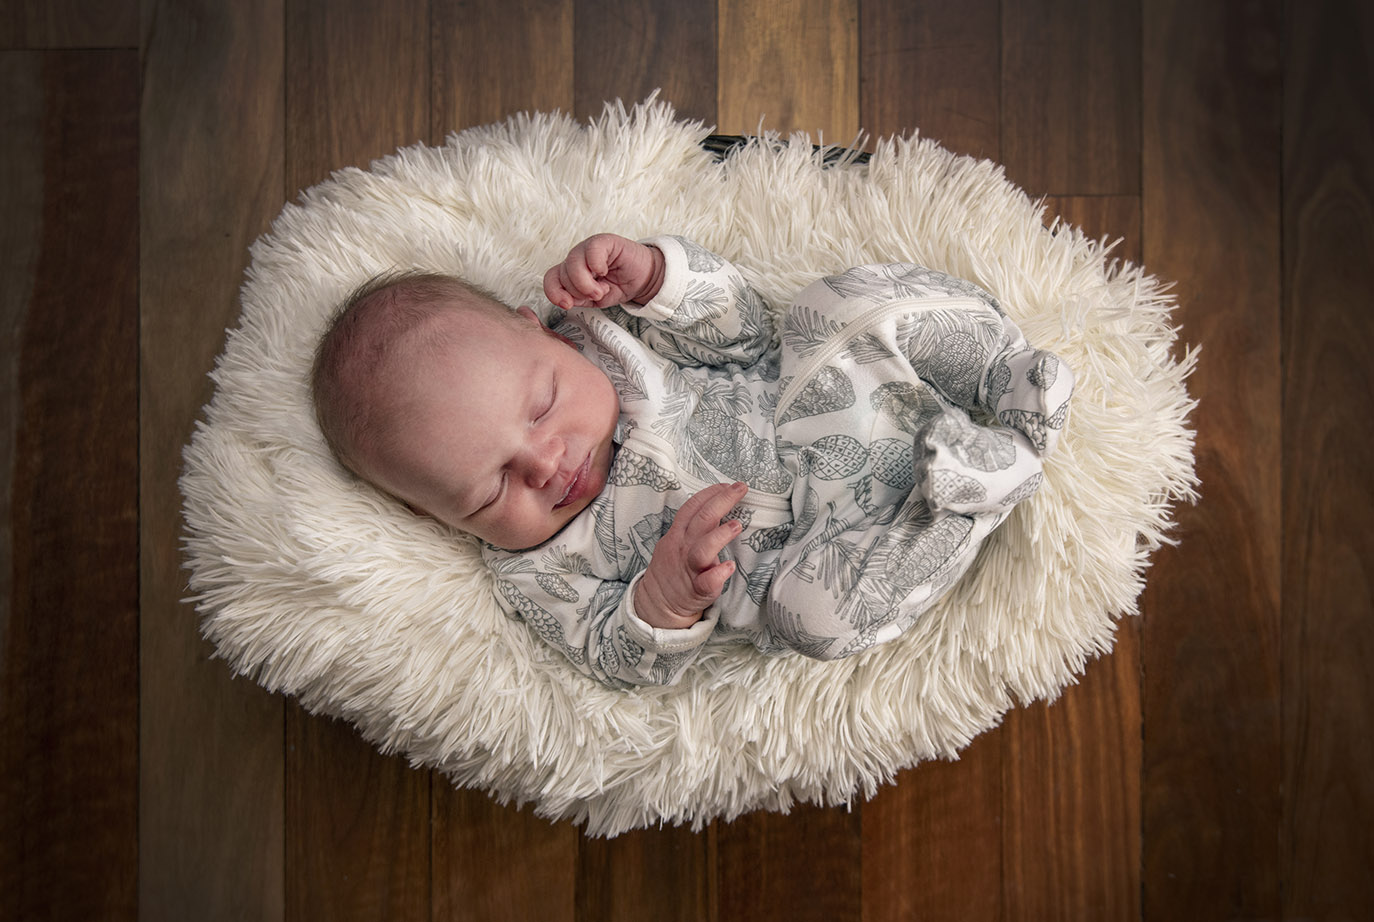 Baby in a basket on wooden floor